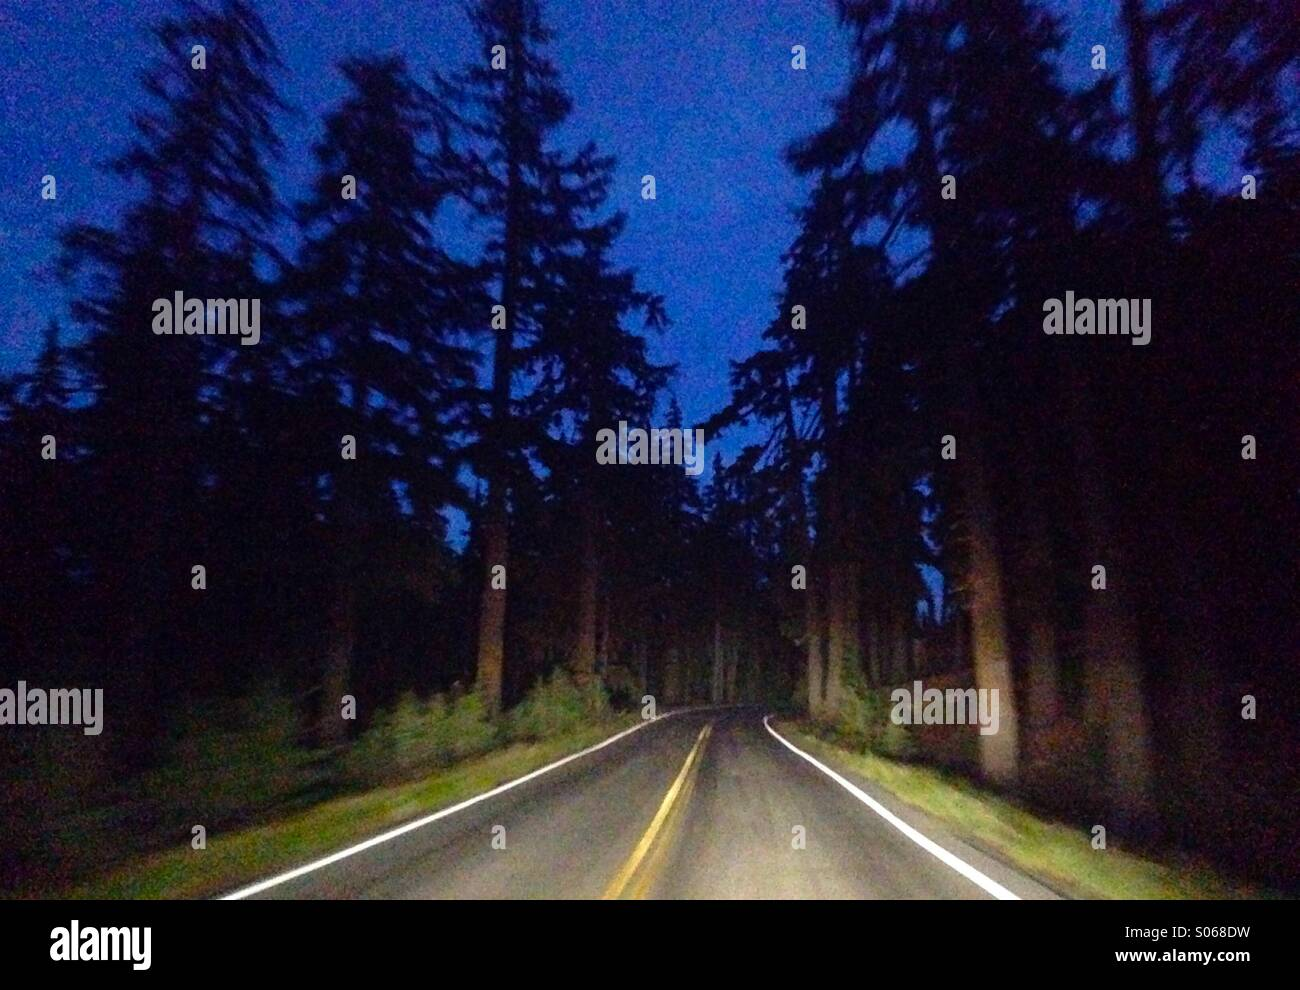 A road through a forest in Oregon is lit by headlights of a car. - Stock Image